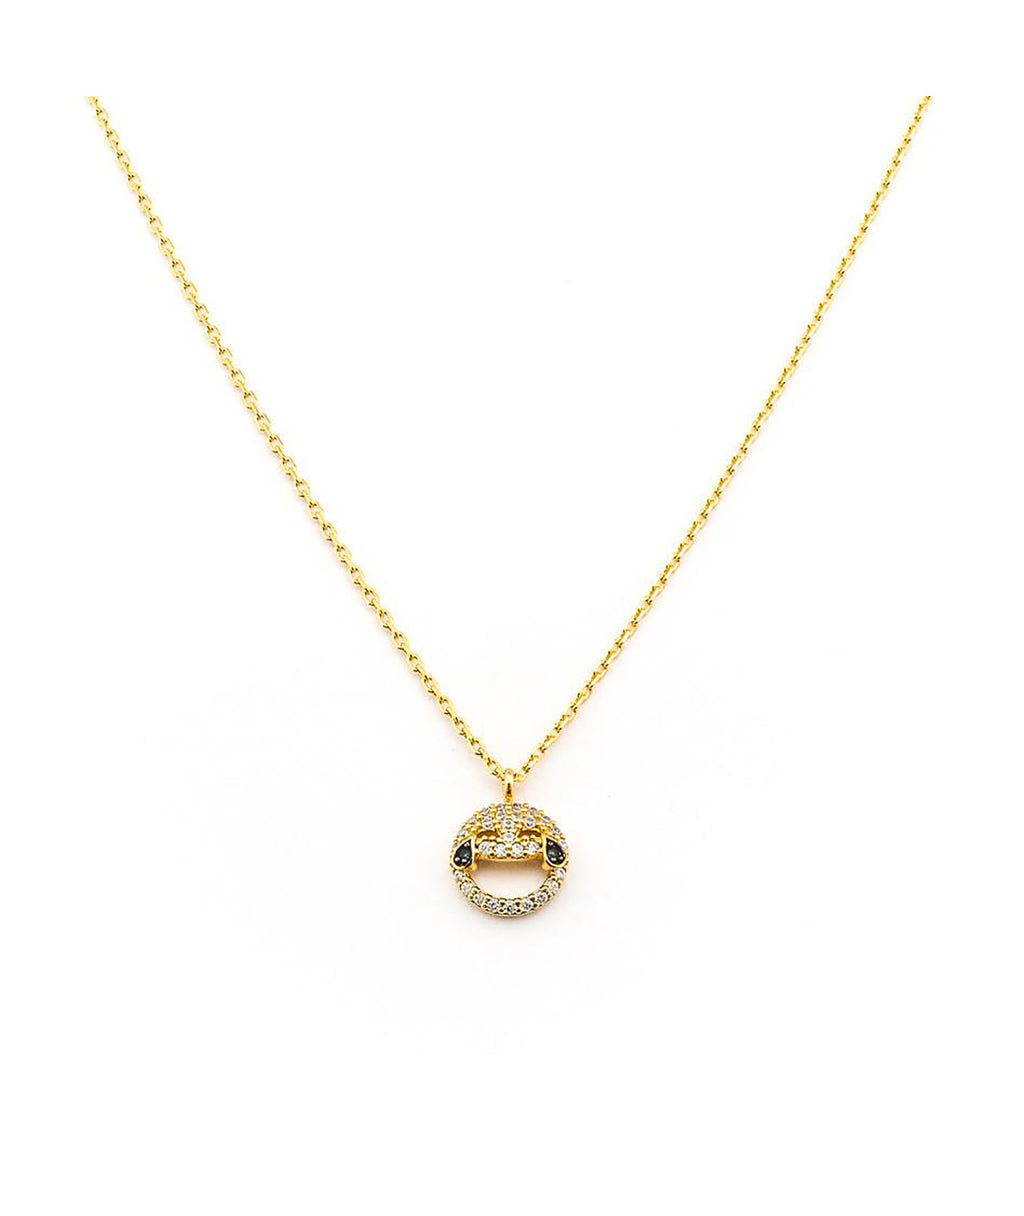 TAI Emoji Necklace